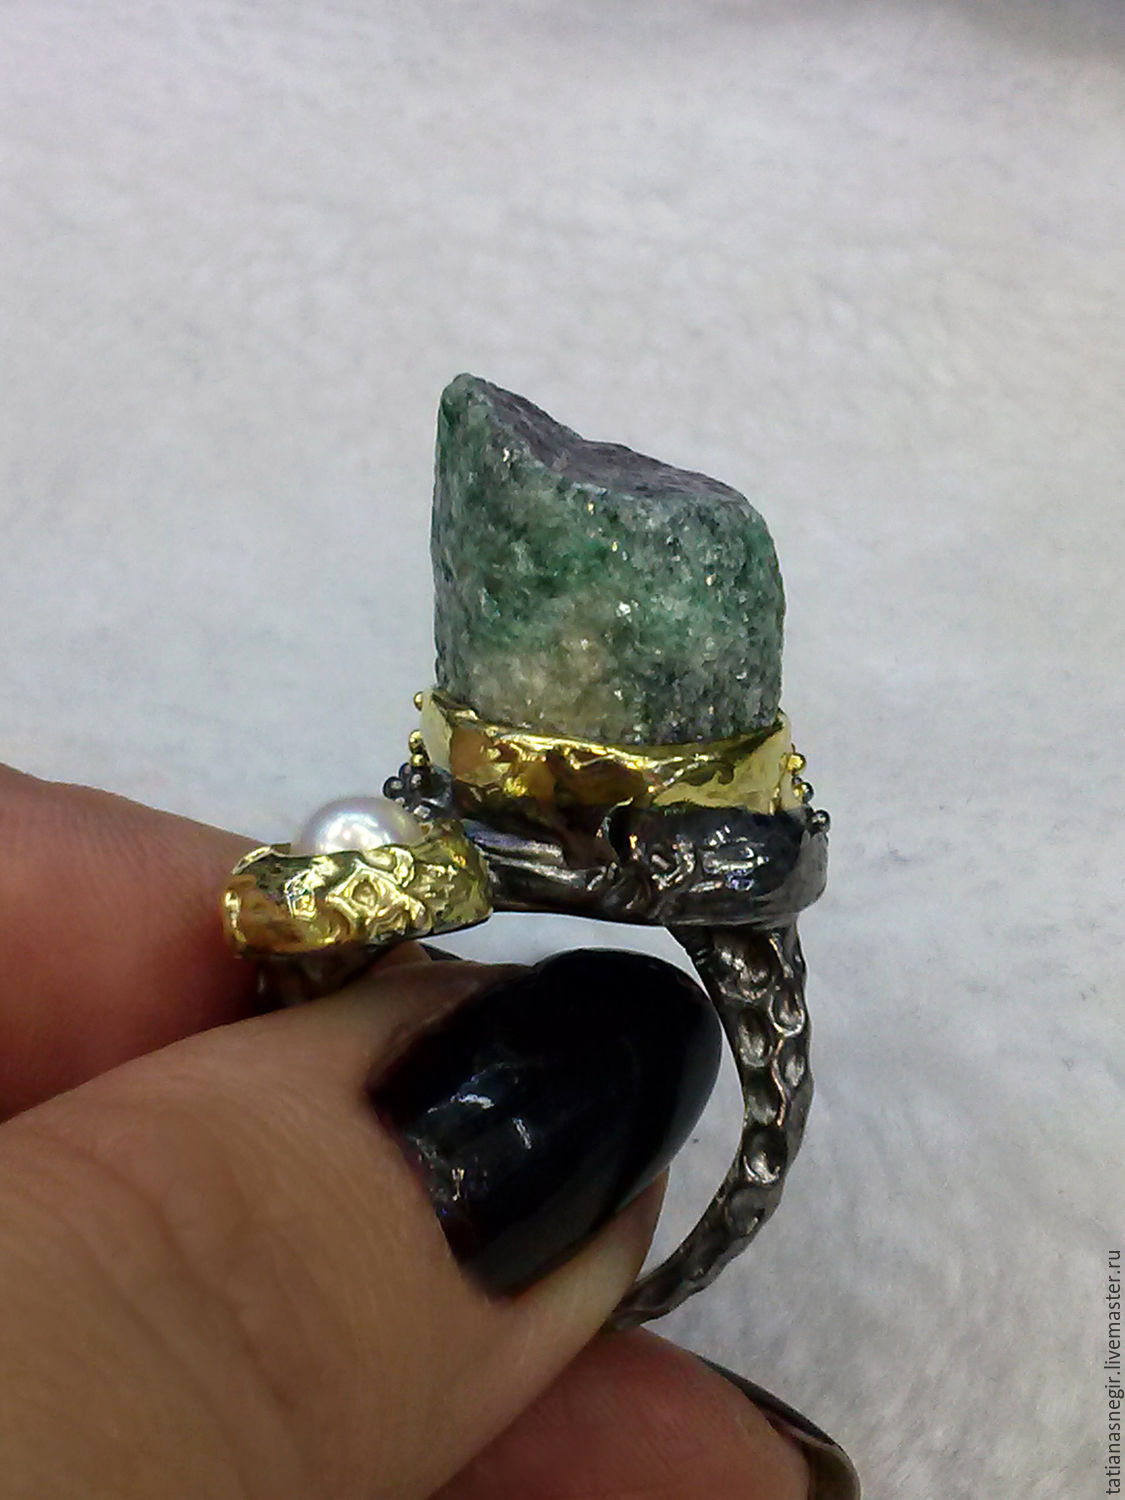 A ring with a ruby crystal in zoisite, 925 sterling silver, Rings, Lytkarino,  Фото №1